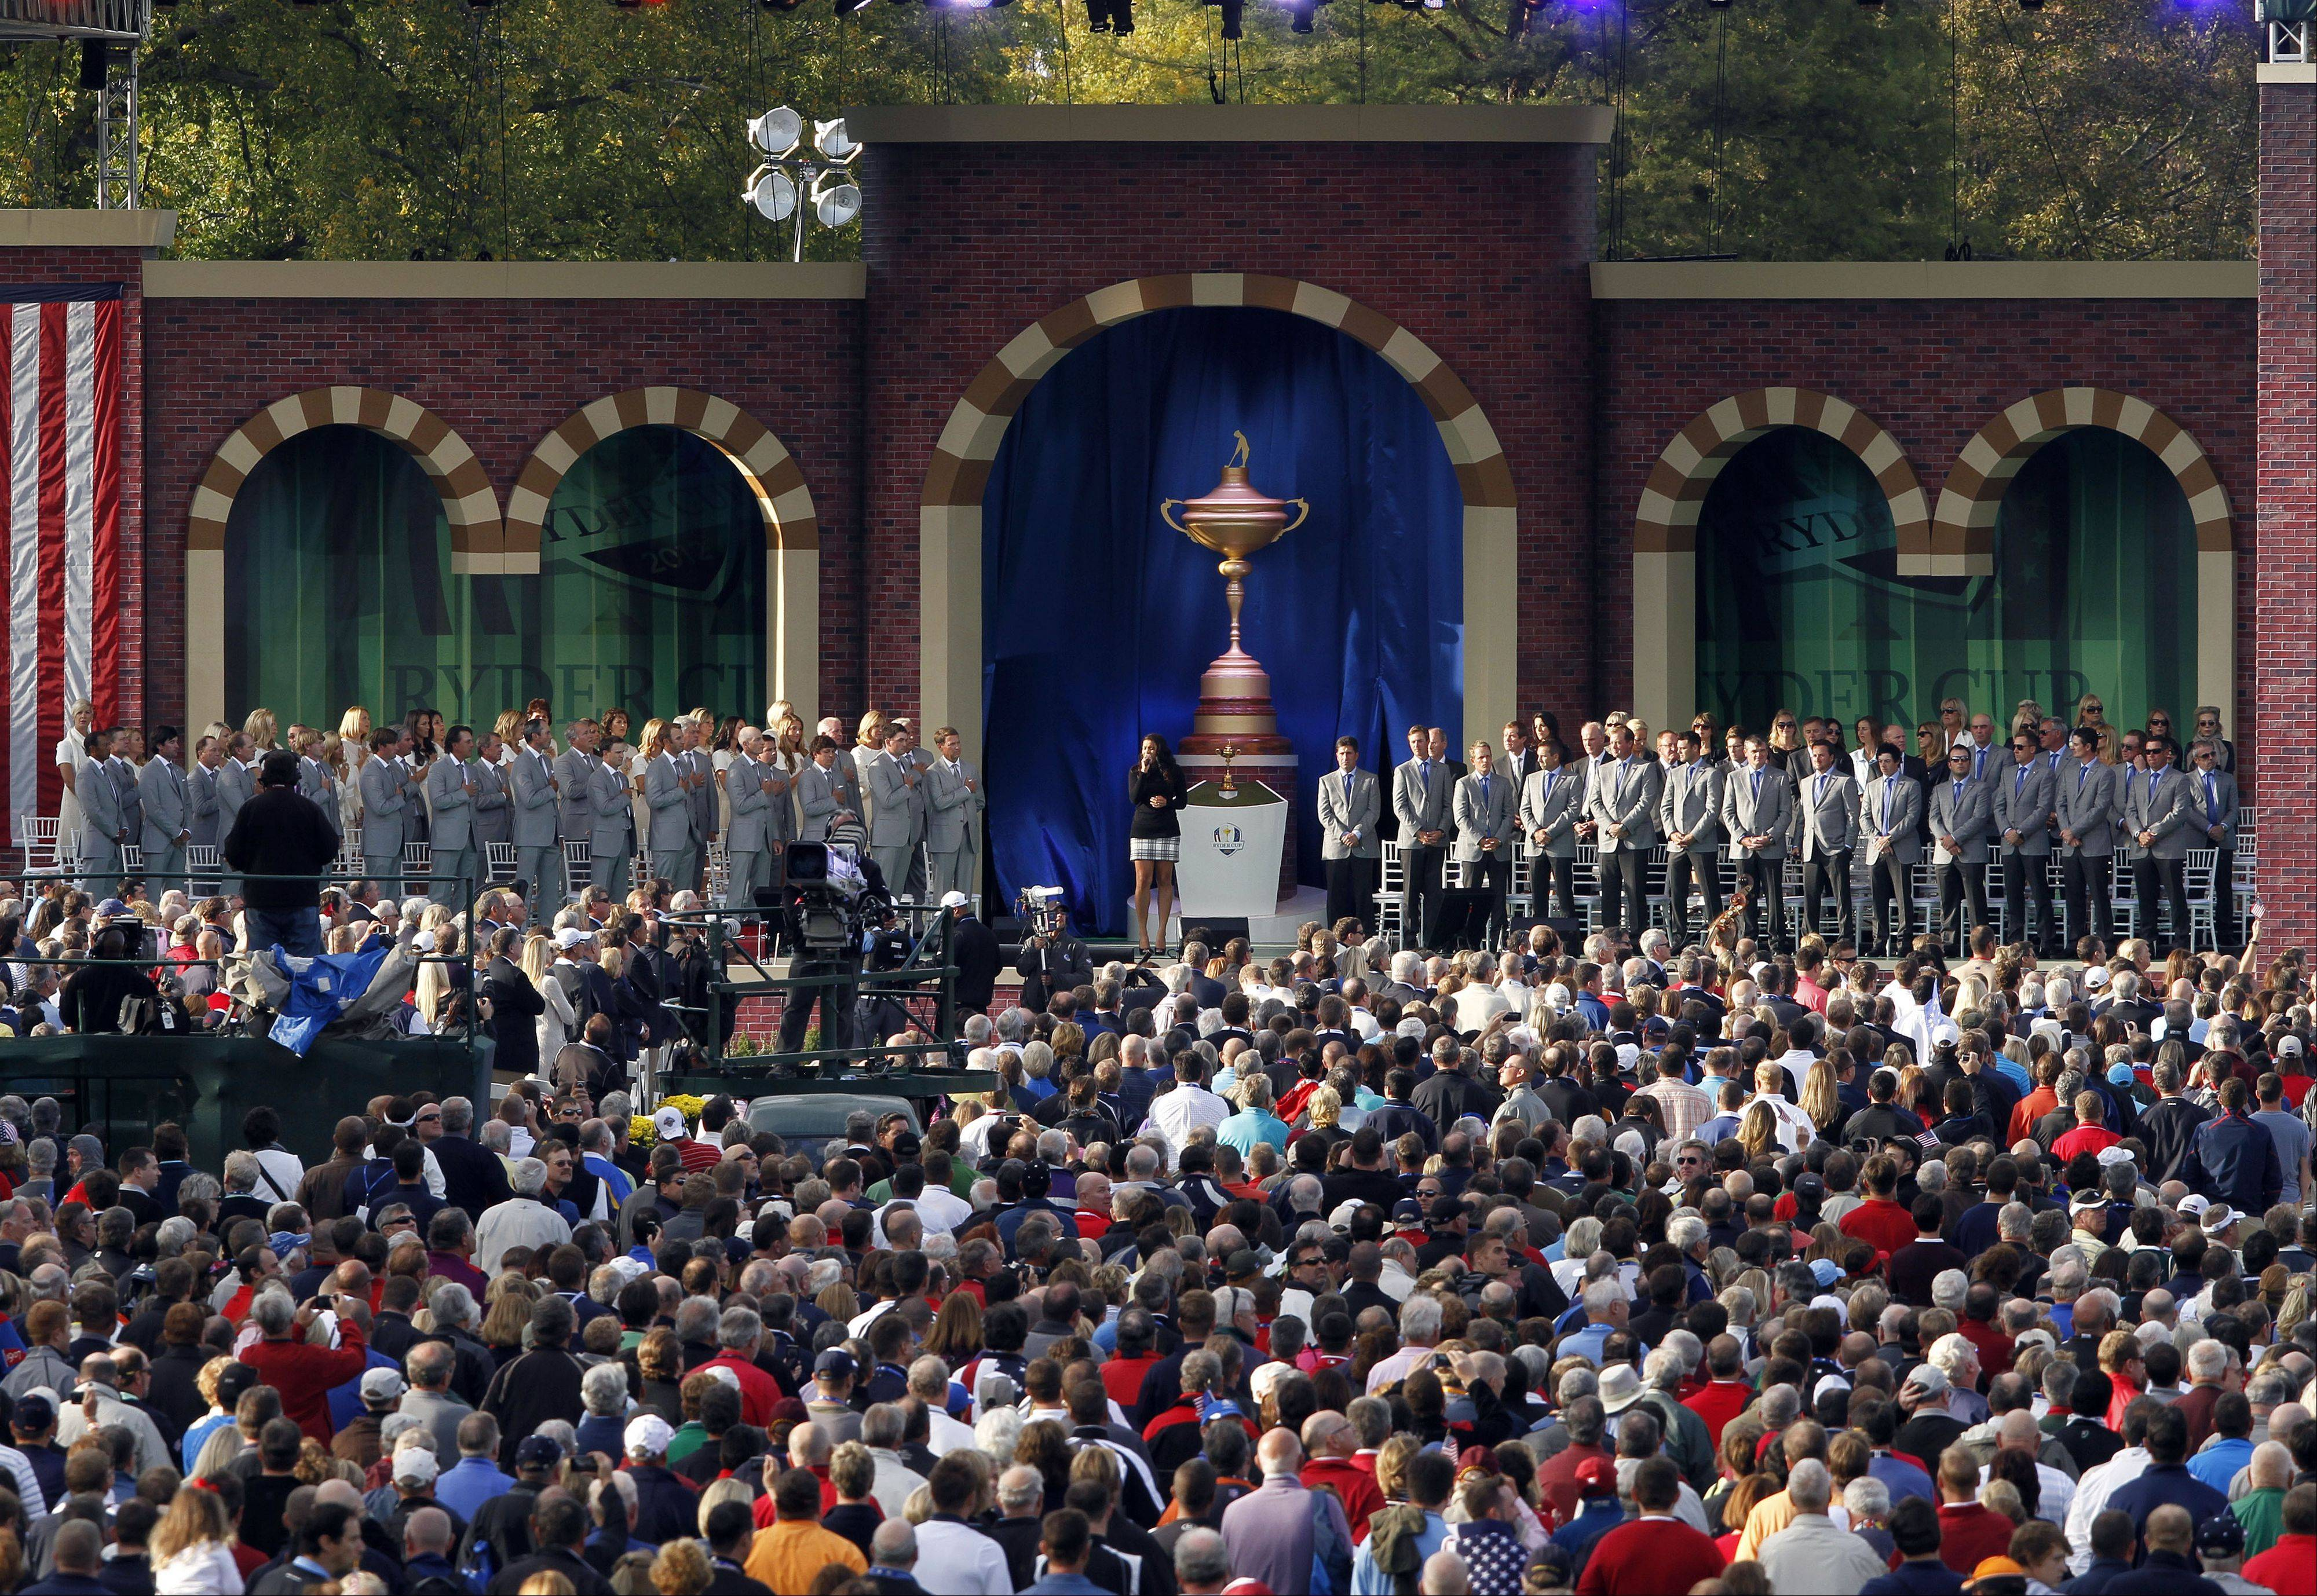 Images: Ryder Cup Opening Ceremonies